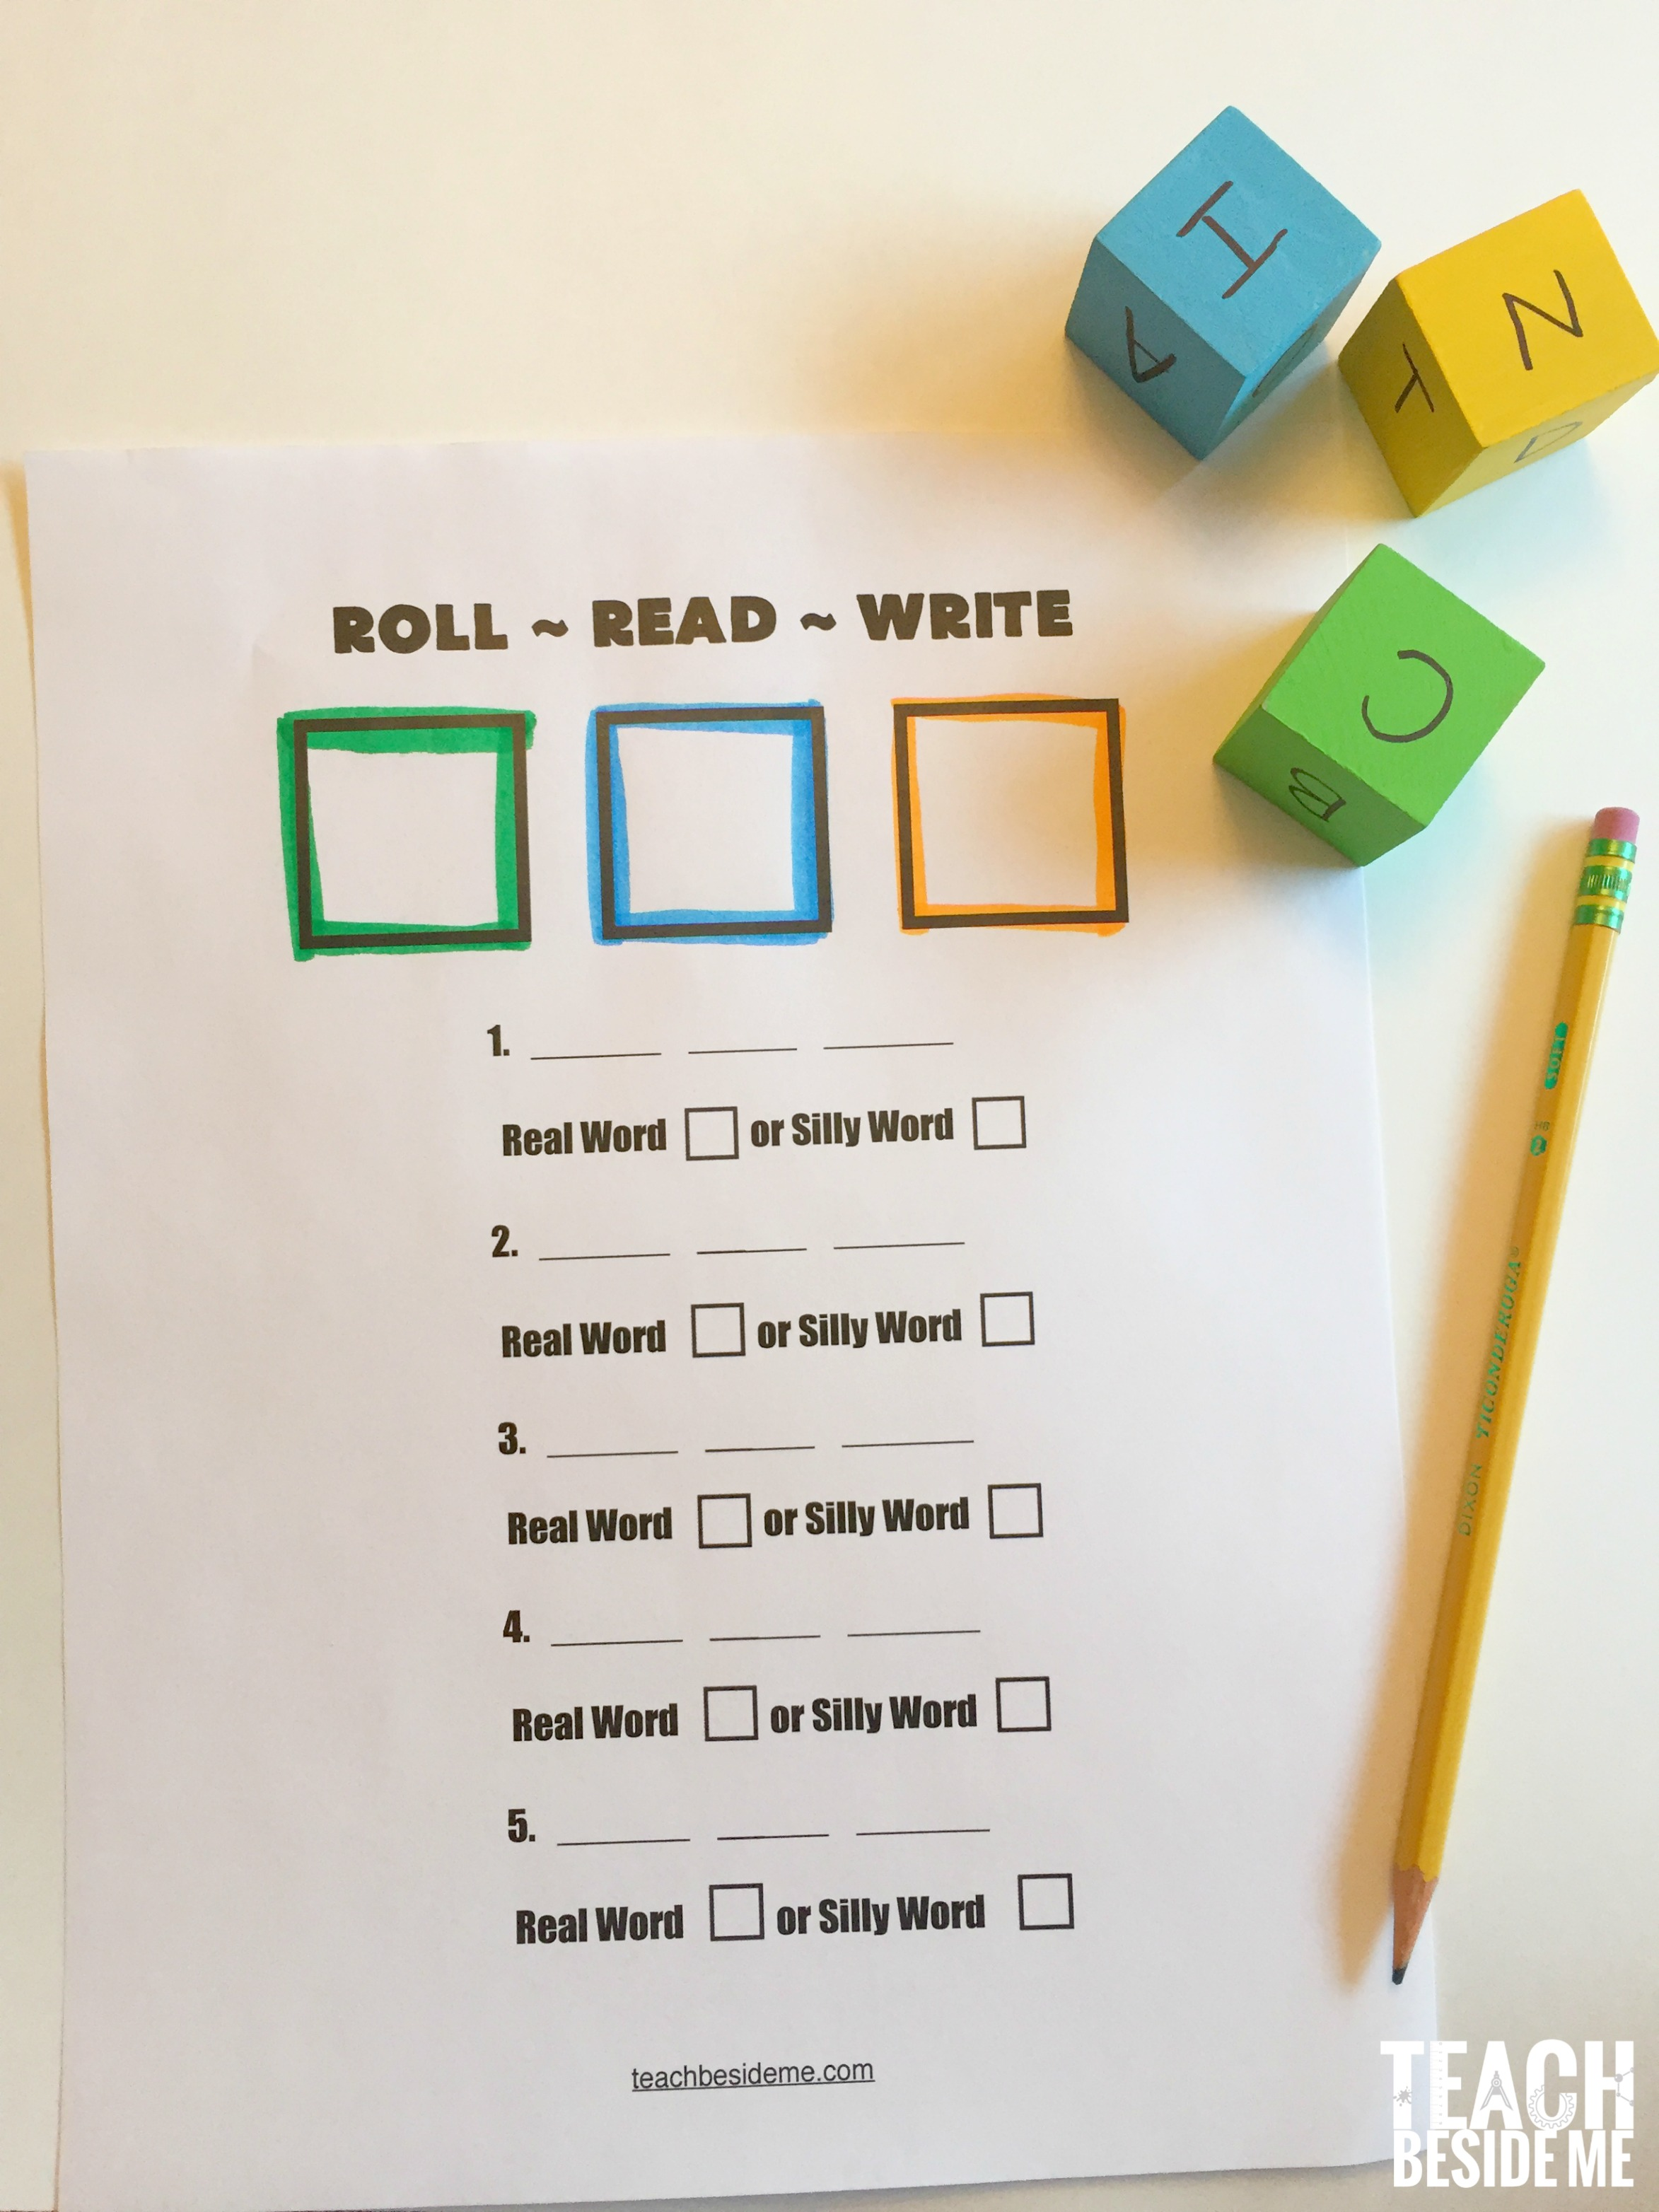 sign up for my weekly emails and get access to the free printable library